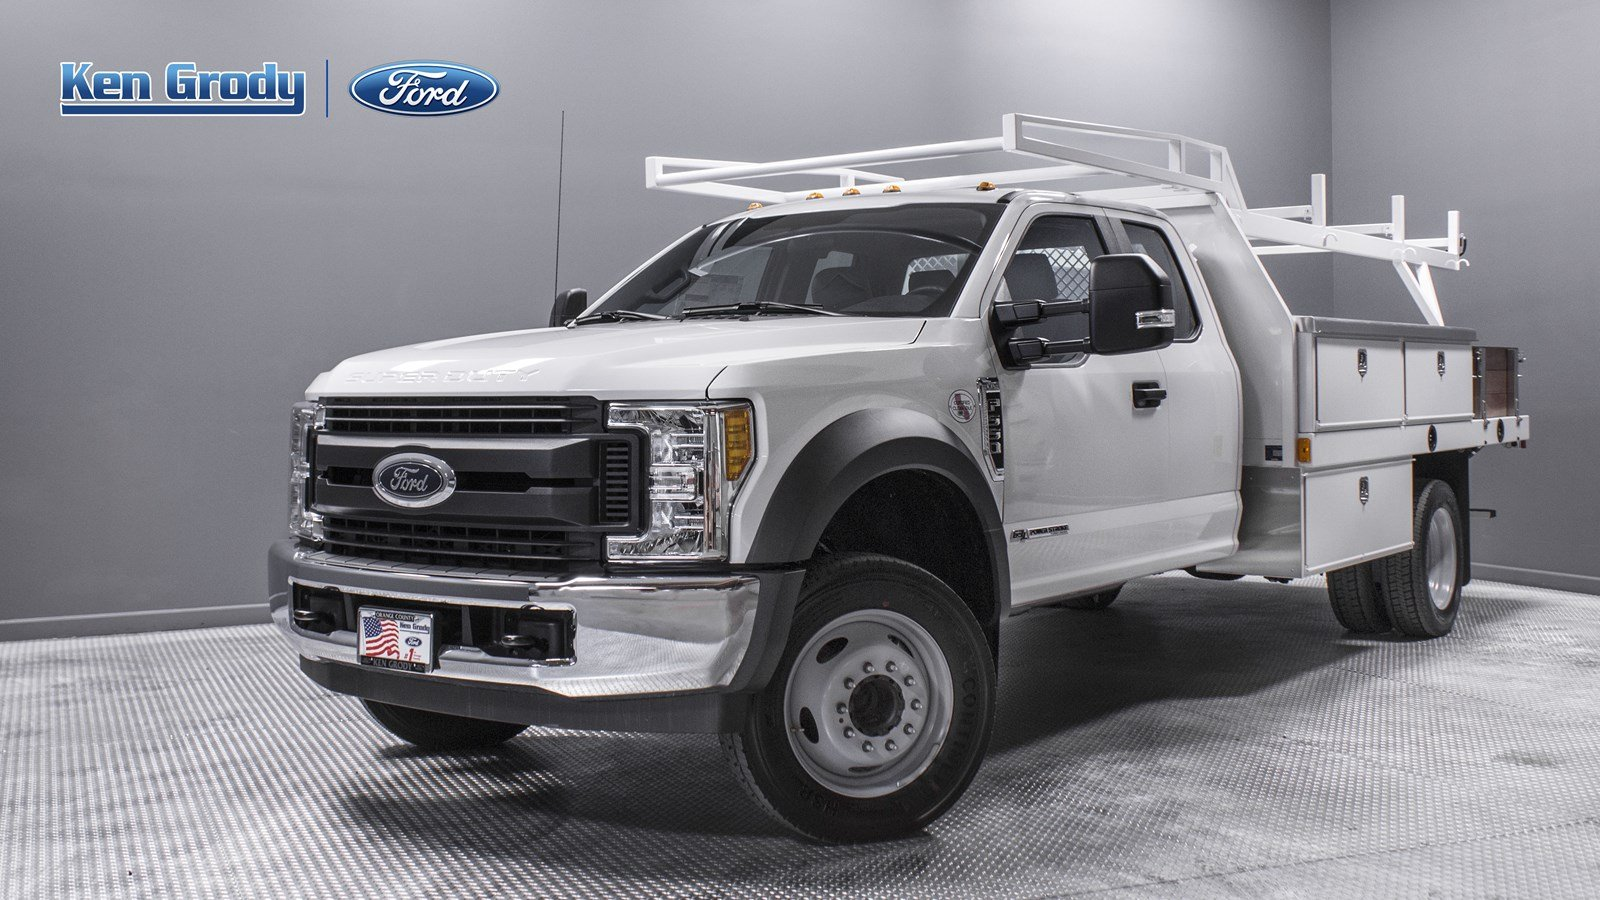 new 2017 ford super duty f 550 drw xl extended cab chassis cab in